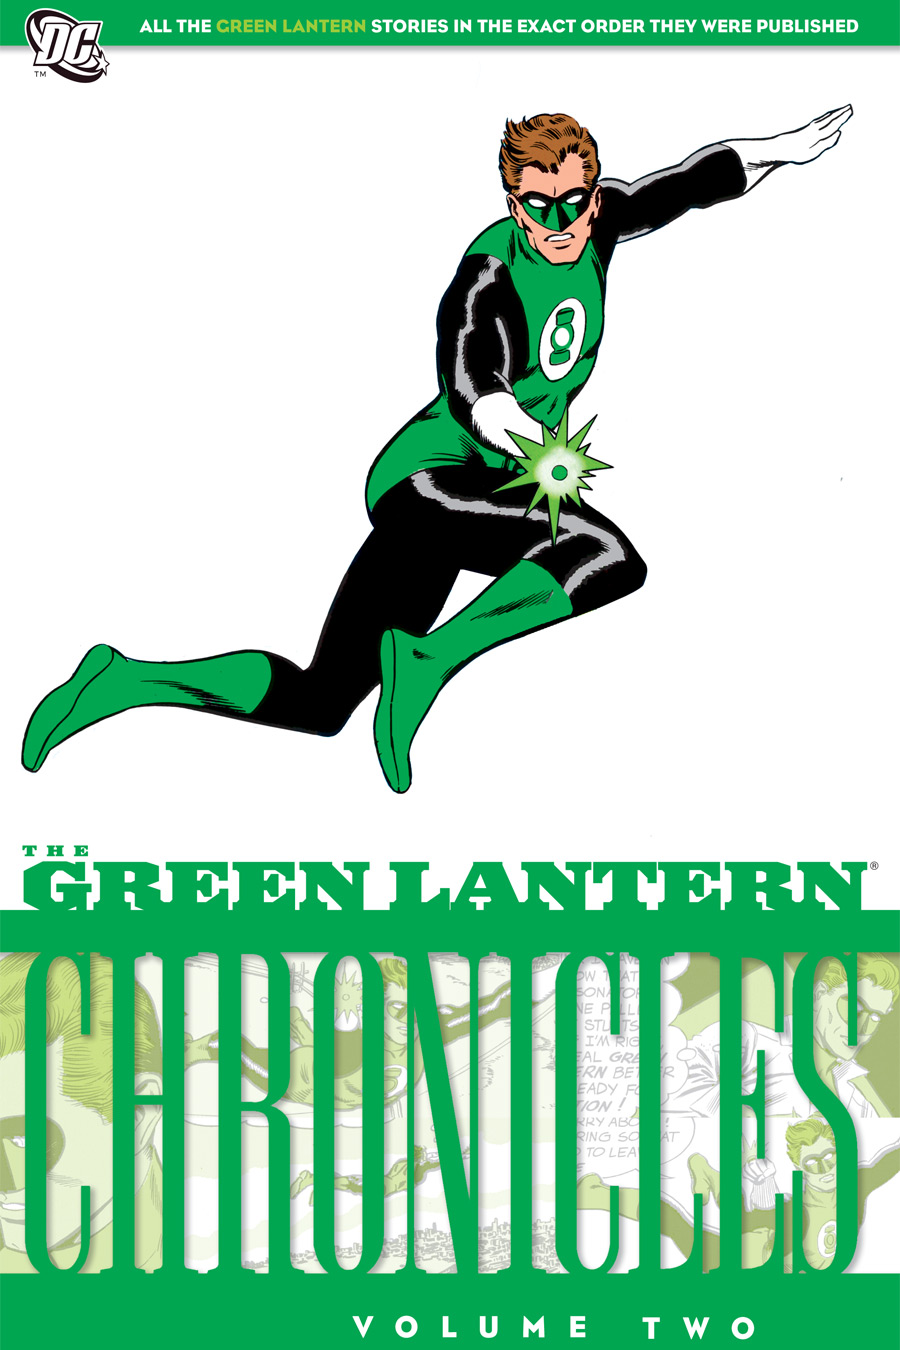 The Green Lantern Chronicles Vol. 2 (Collected)